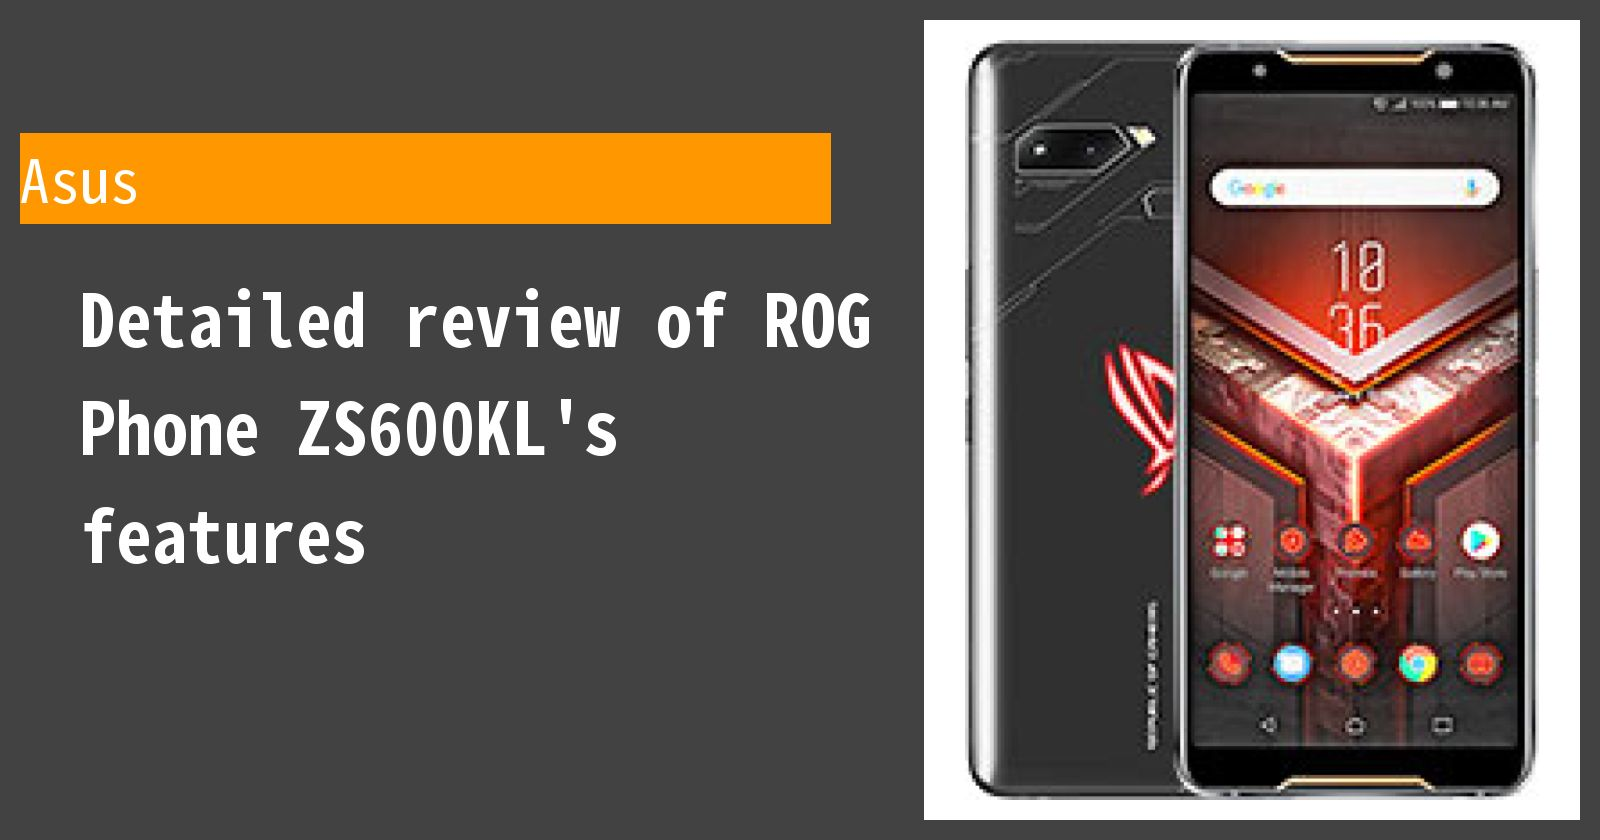 Detailed review of ROG Phone ZS600KL's features